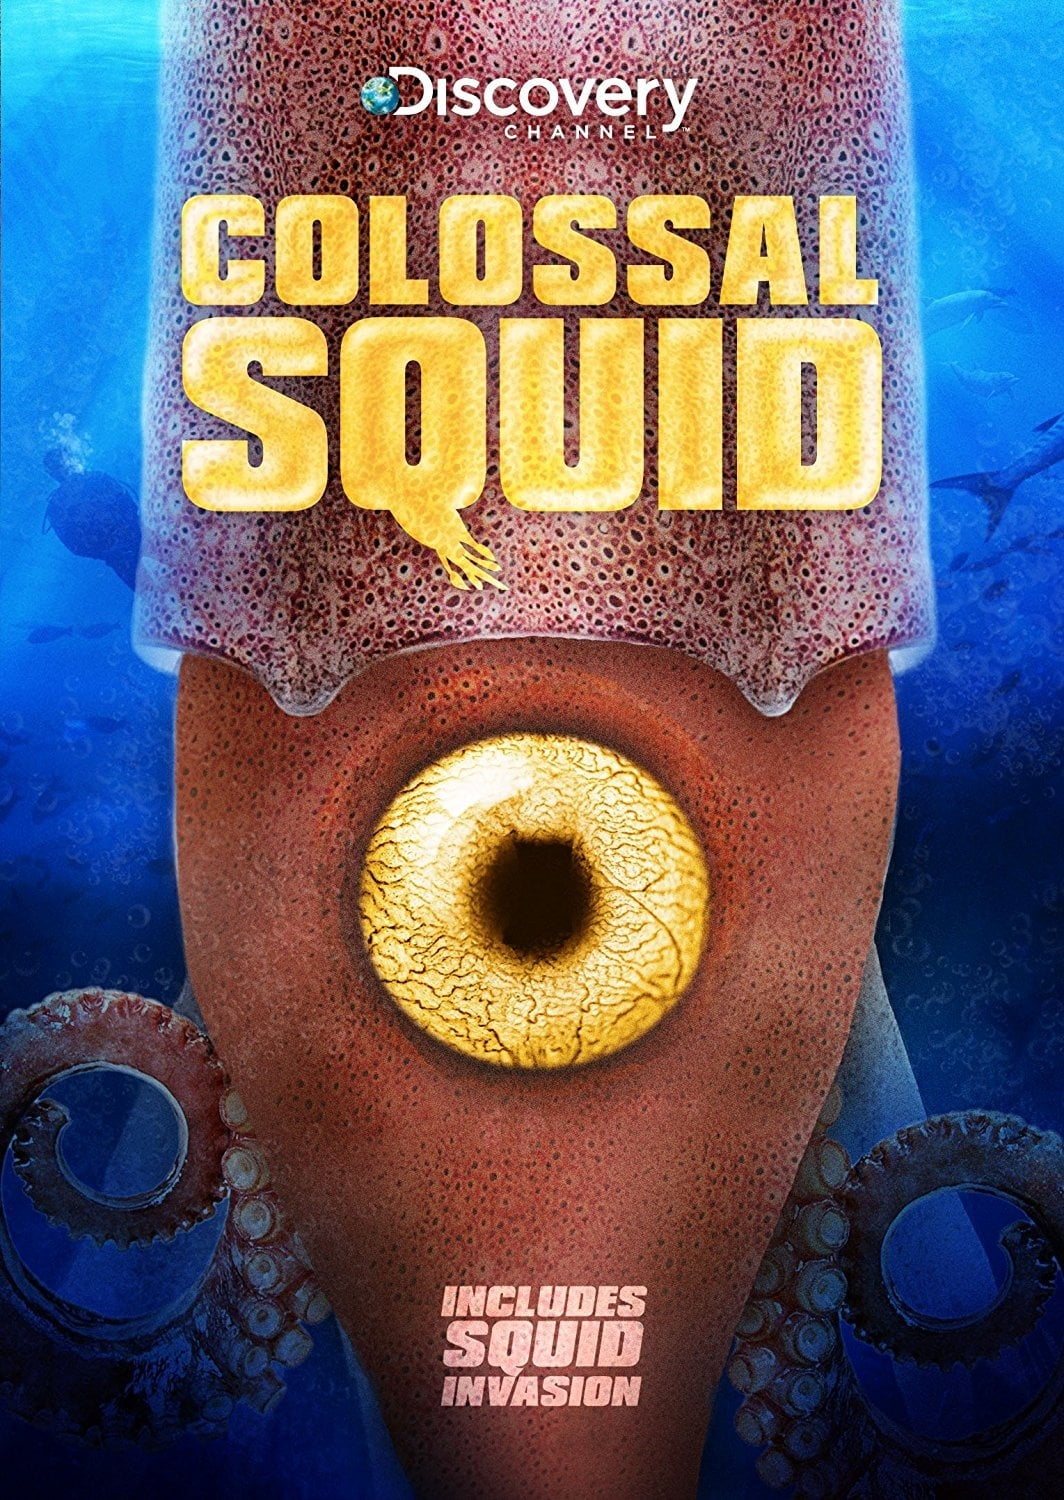 Colossal Squid (2008)